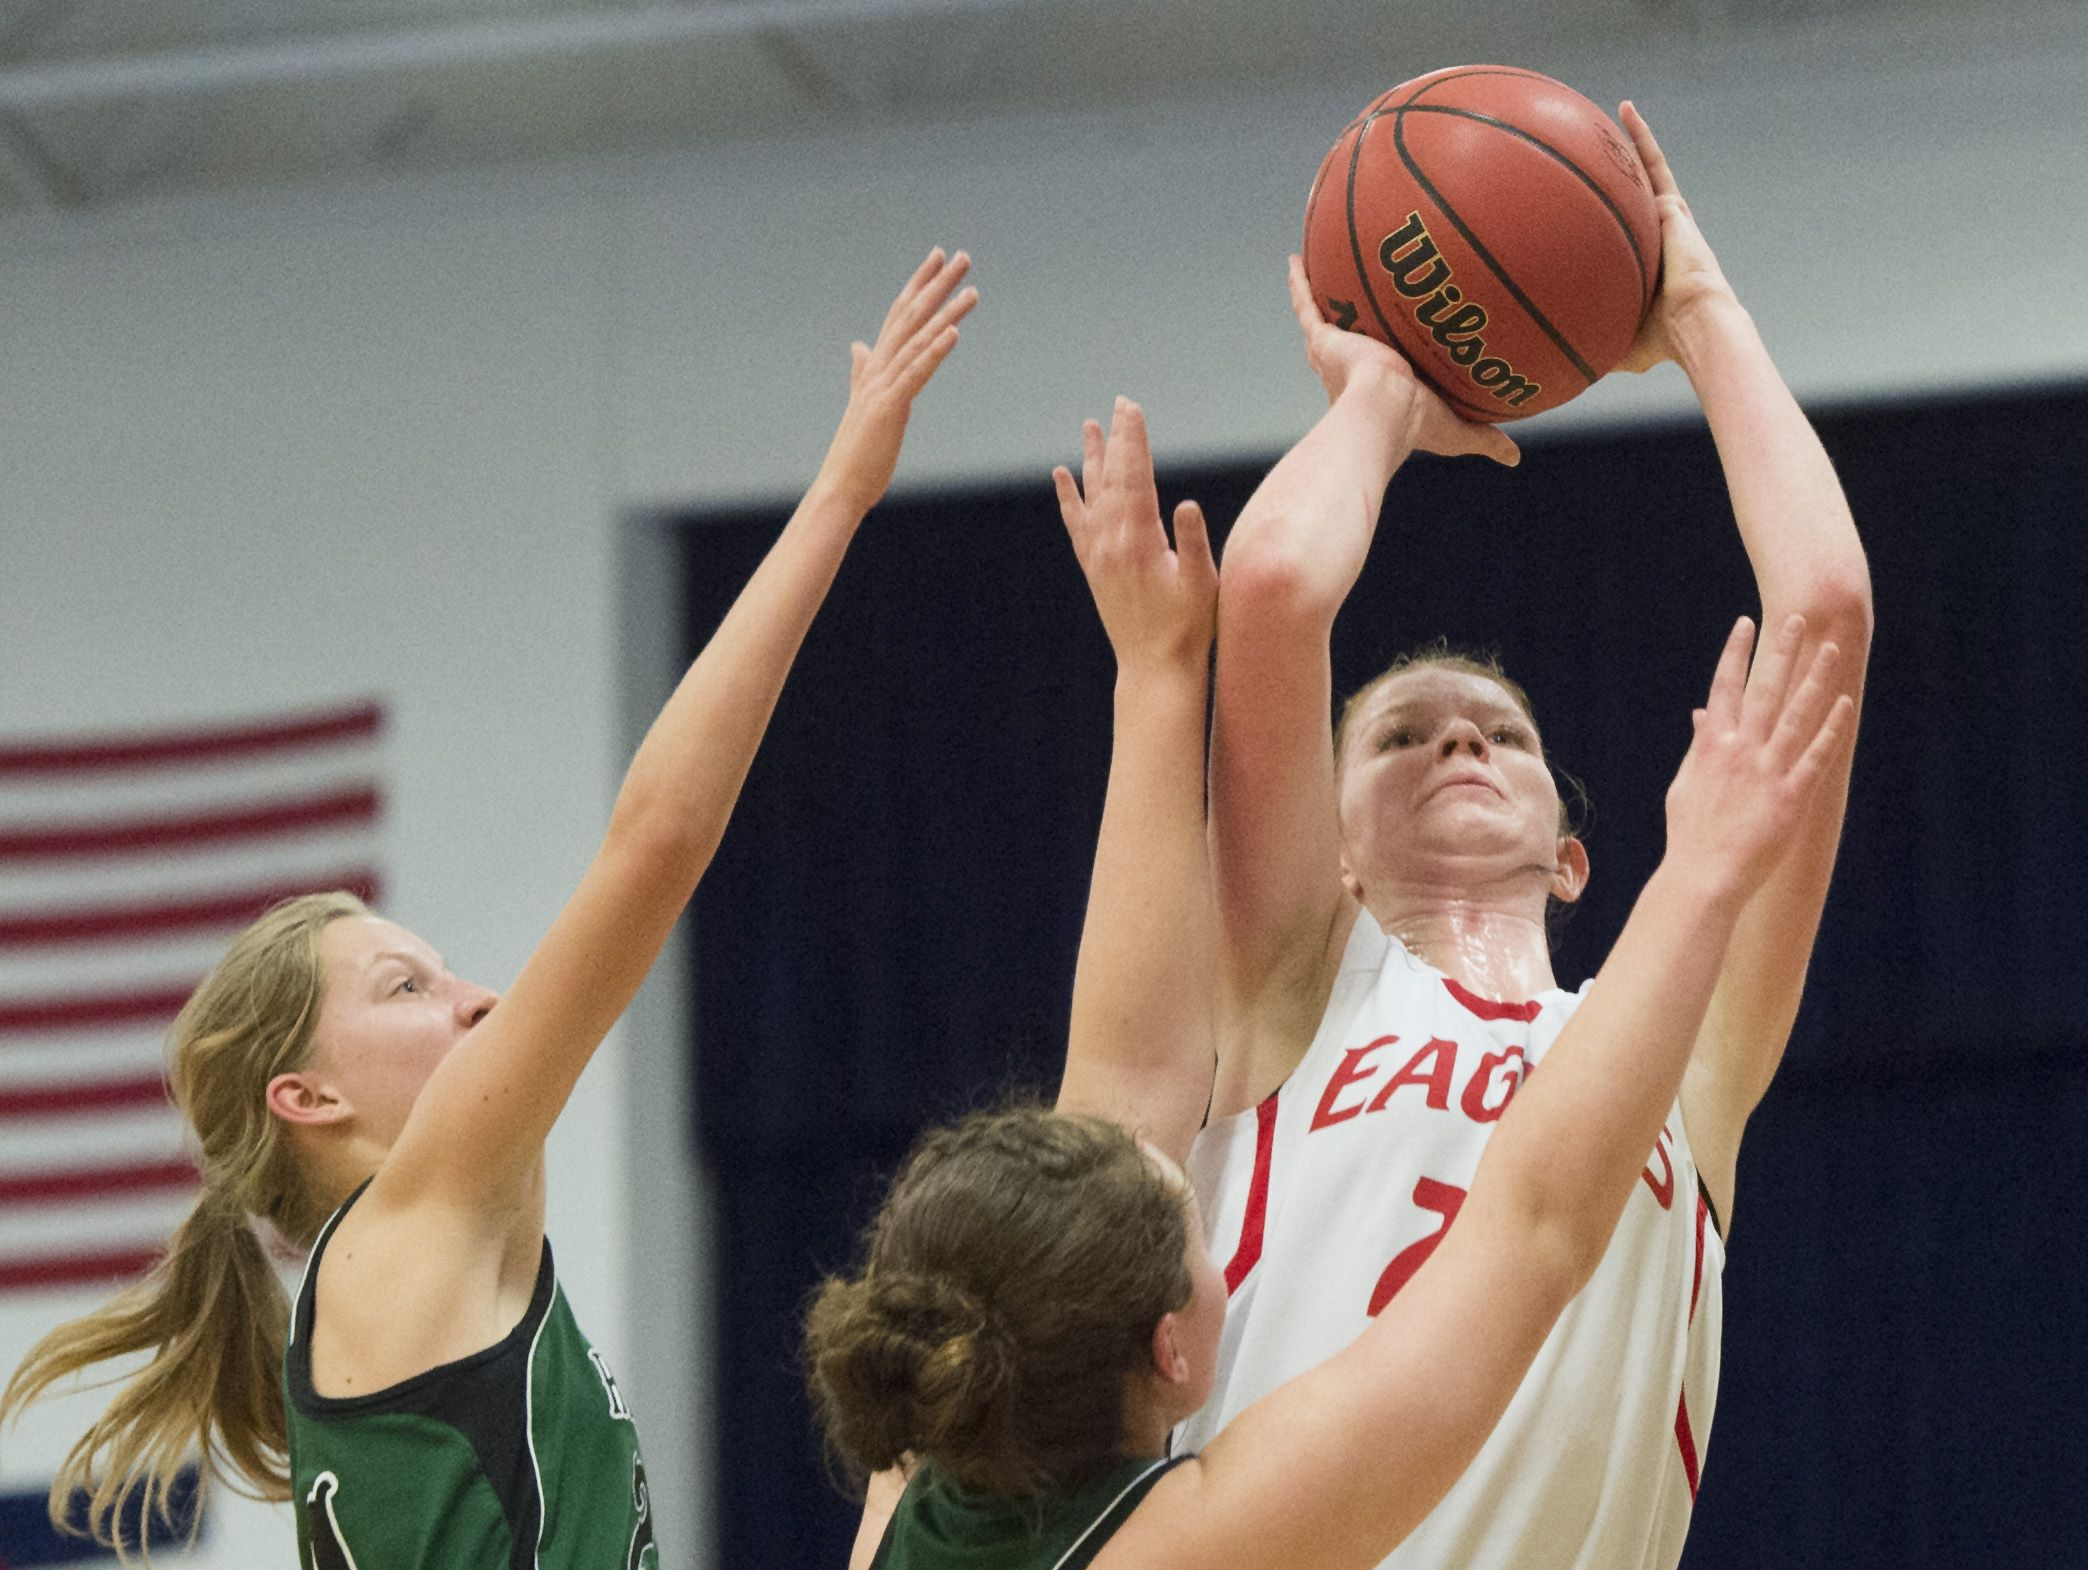 Liberty Common's Halley Miklos has verbally committed to play college basketball at Cornell University.